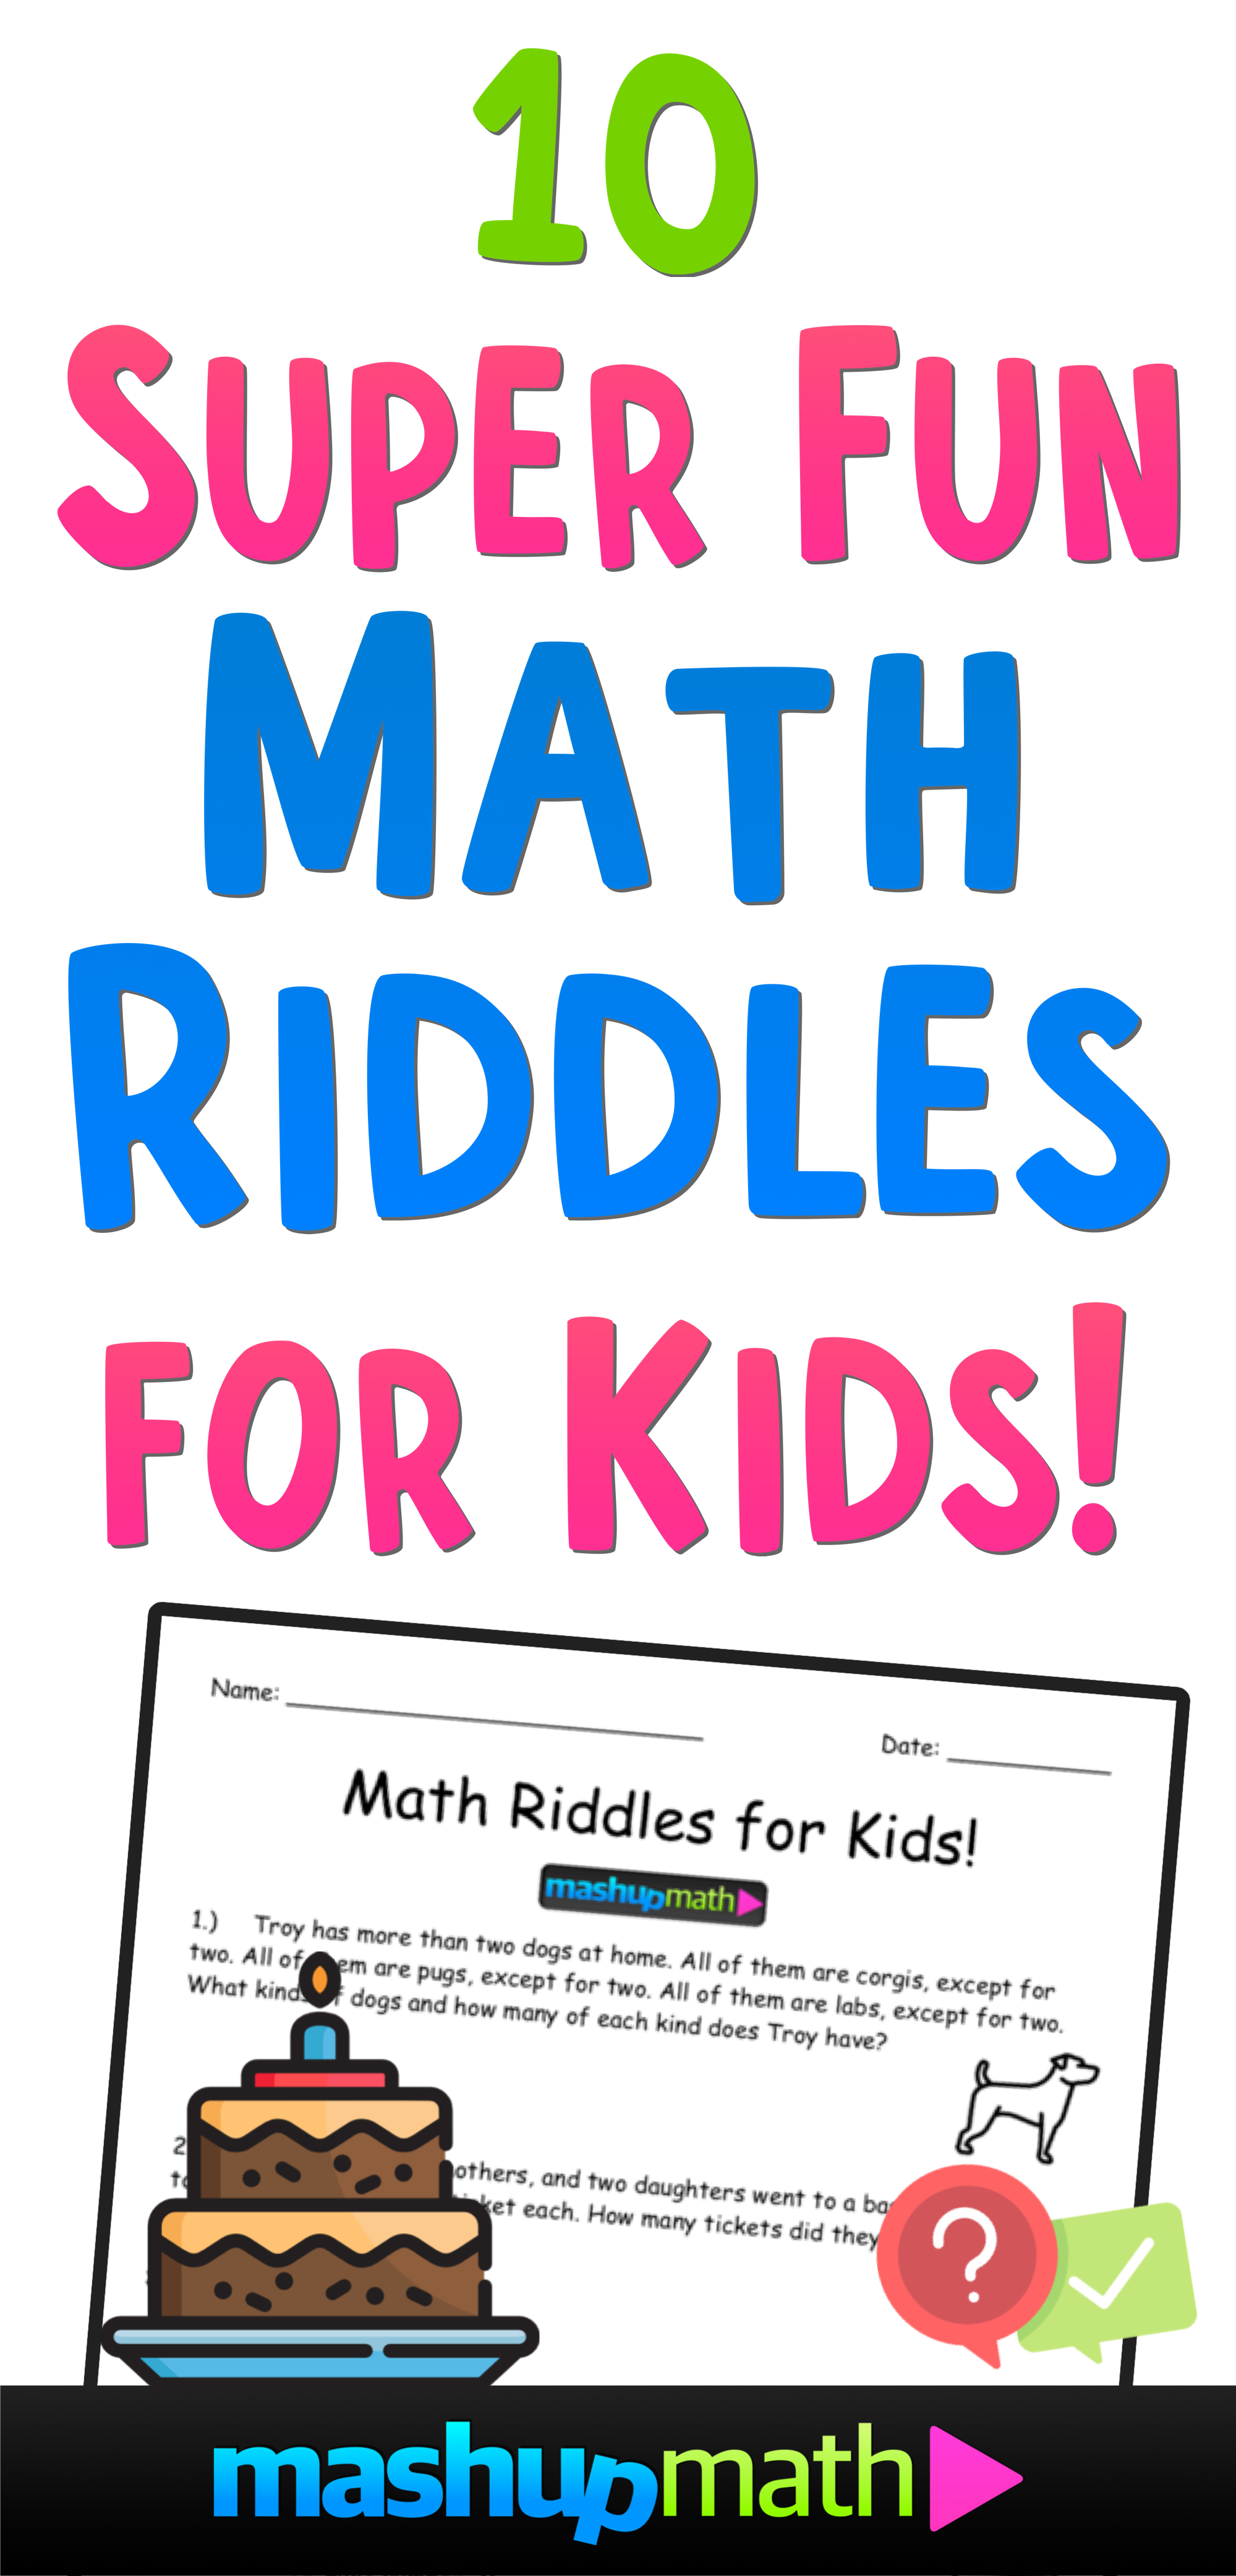 photograph relating to Riddles for Kids Printable identify 10 Tremendous Enjoyable Math Riddles for Youngsters (with Methods) Mashup Math